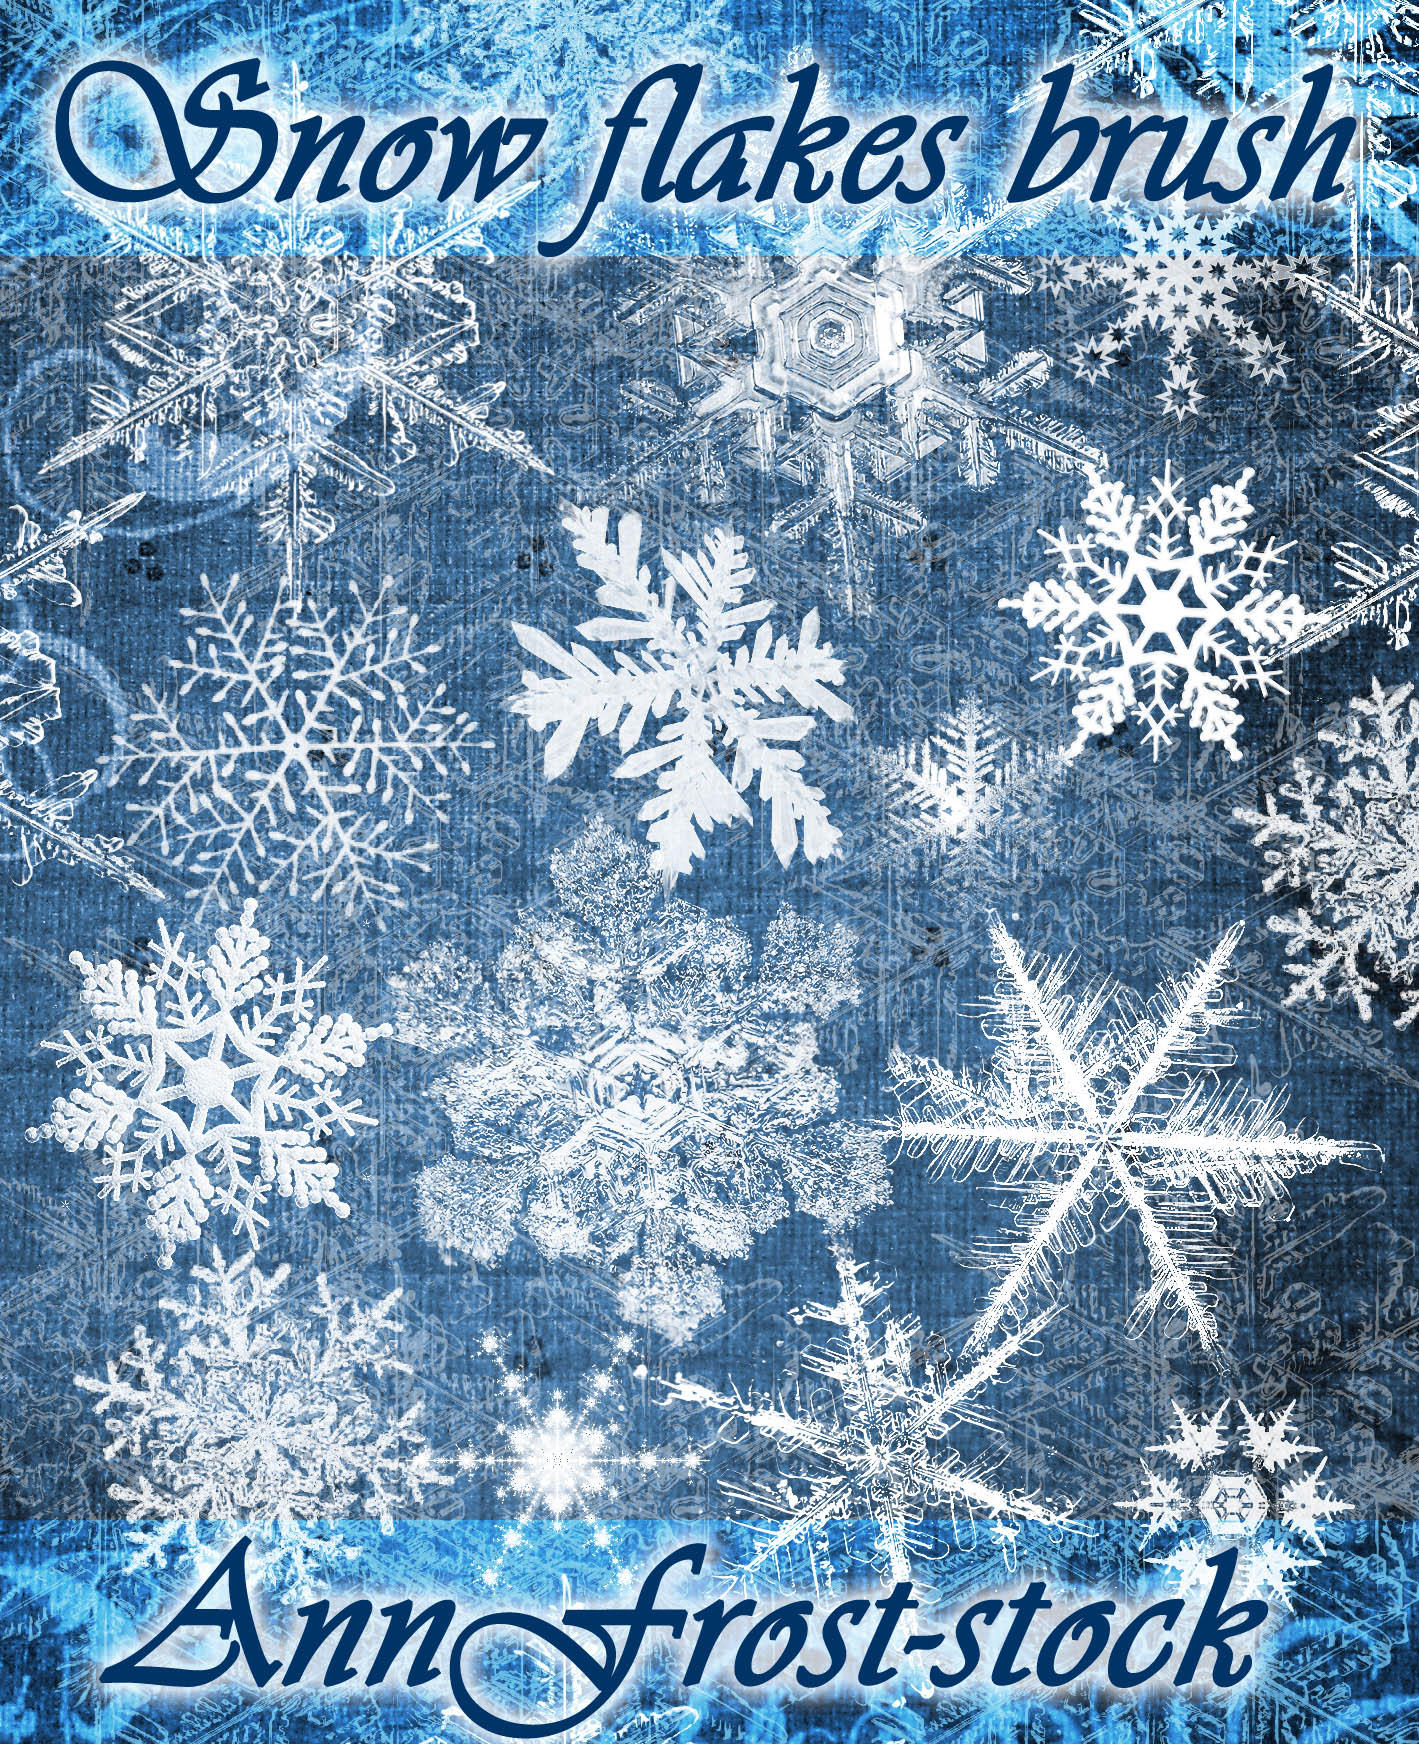 Christmas Falling Snow Wallpaper Note 3 Snow Flakes Brush By Annfrost Stock On Deviantart